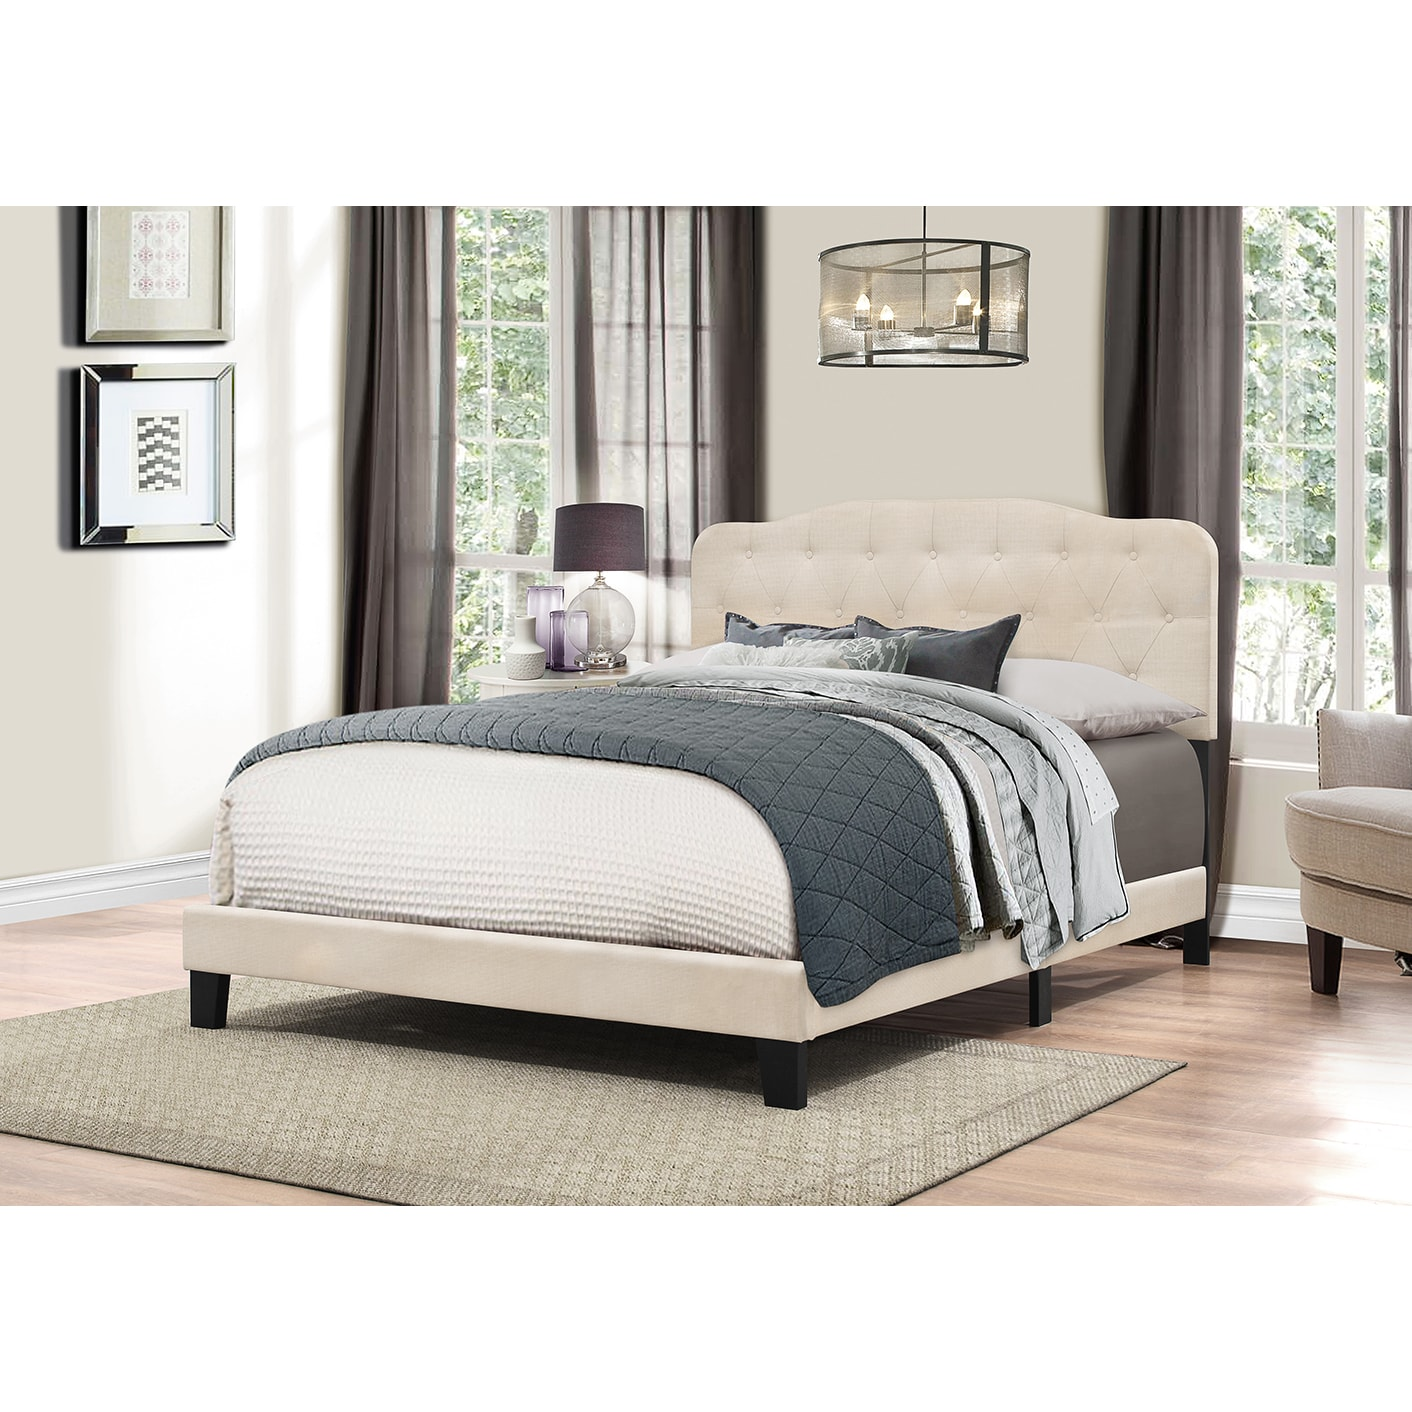 Shop hillsdale furniture nicole linen fabric bed headboard in one free shipping today overstock com 13769440